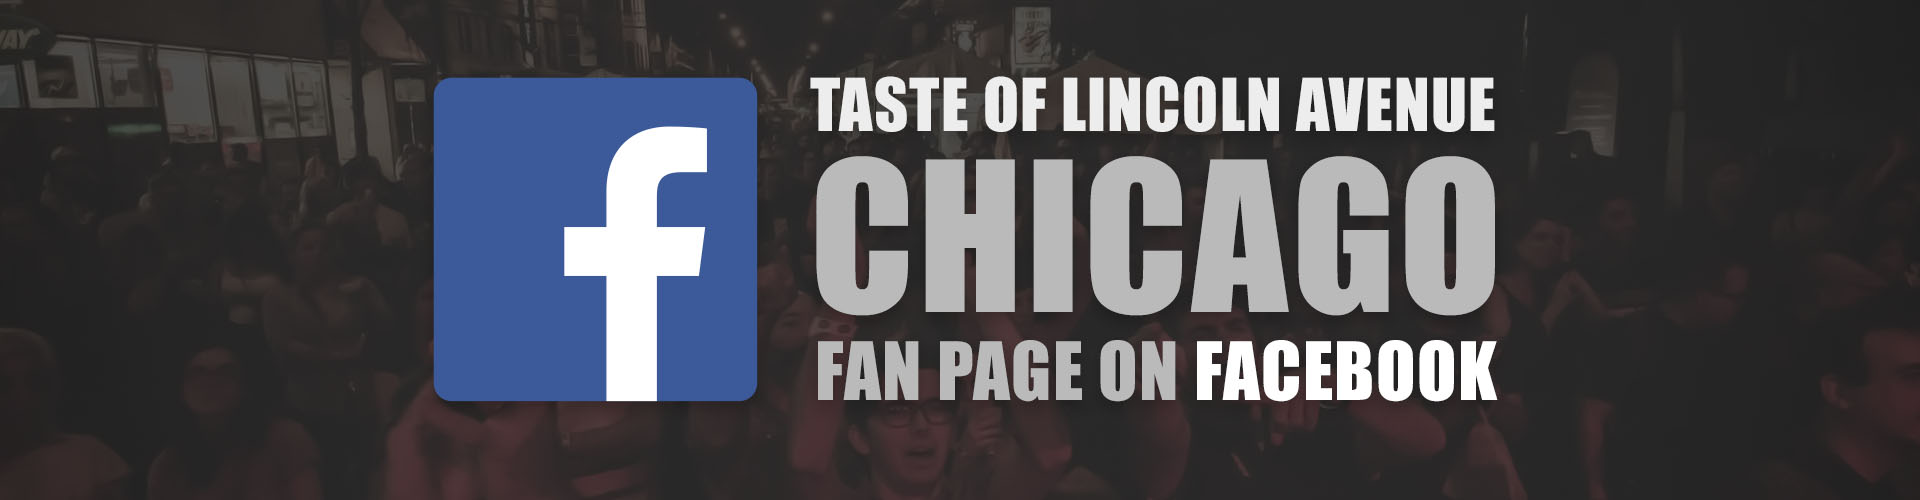 Join Taste Of Lincoln Avenue Chicago on Facebook, like our fan page!